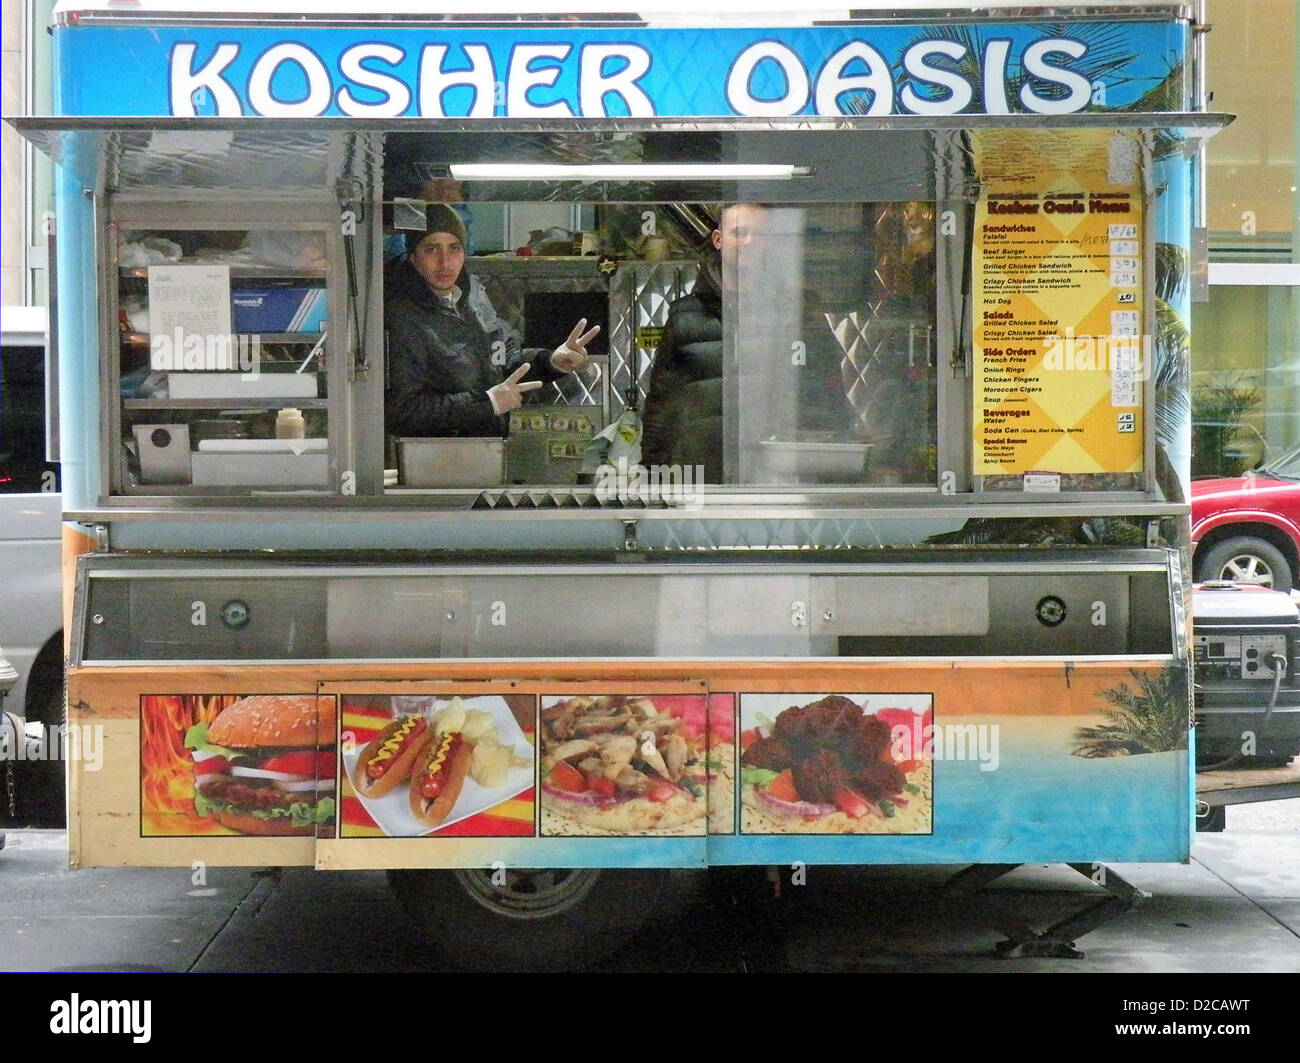 Kosher Food Truck Nyc